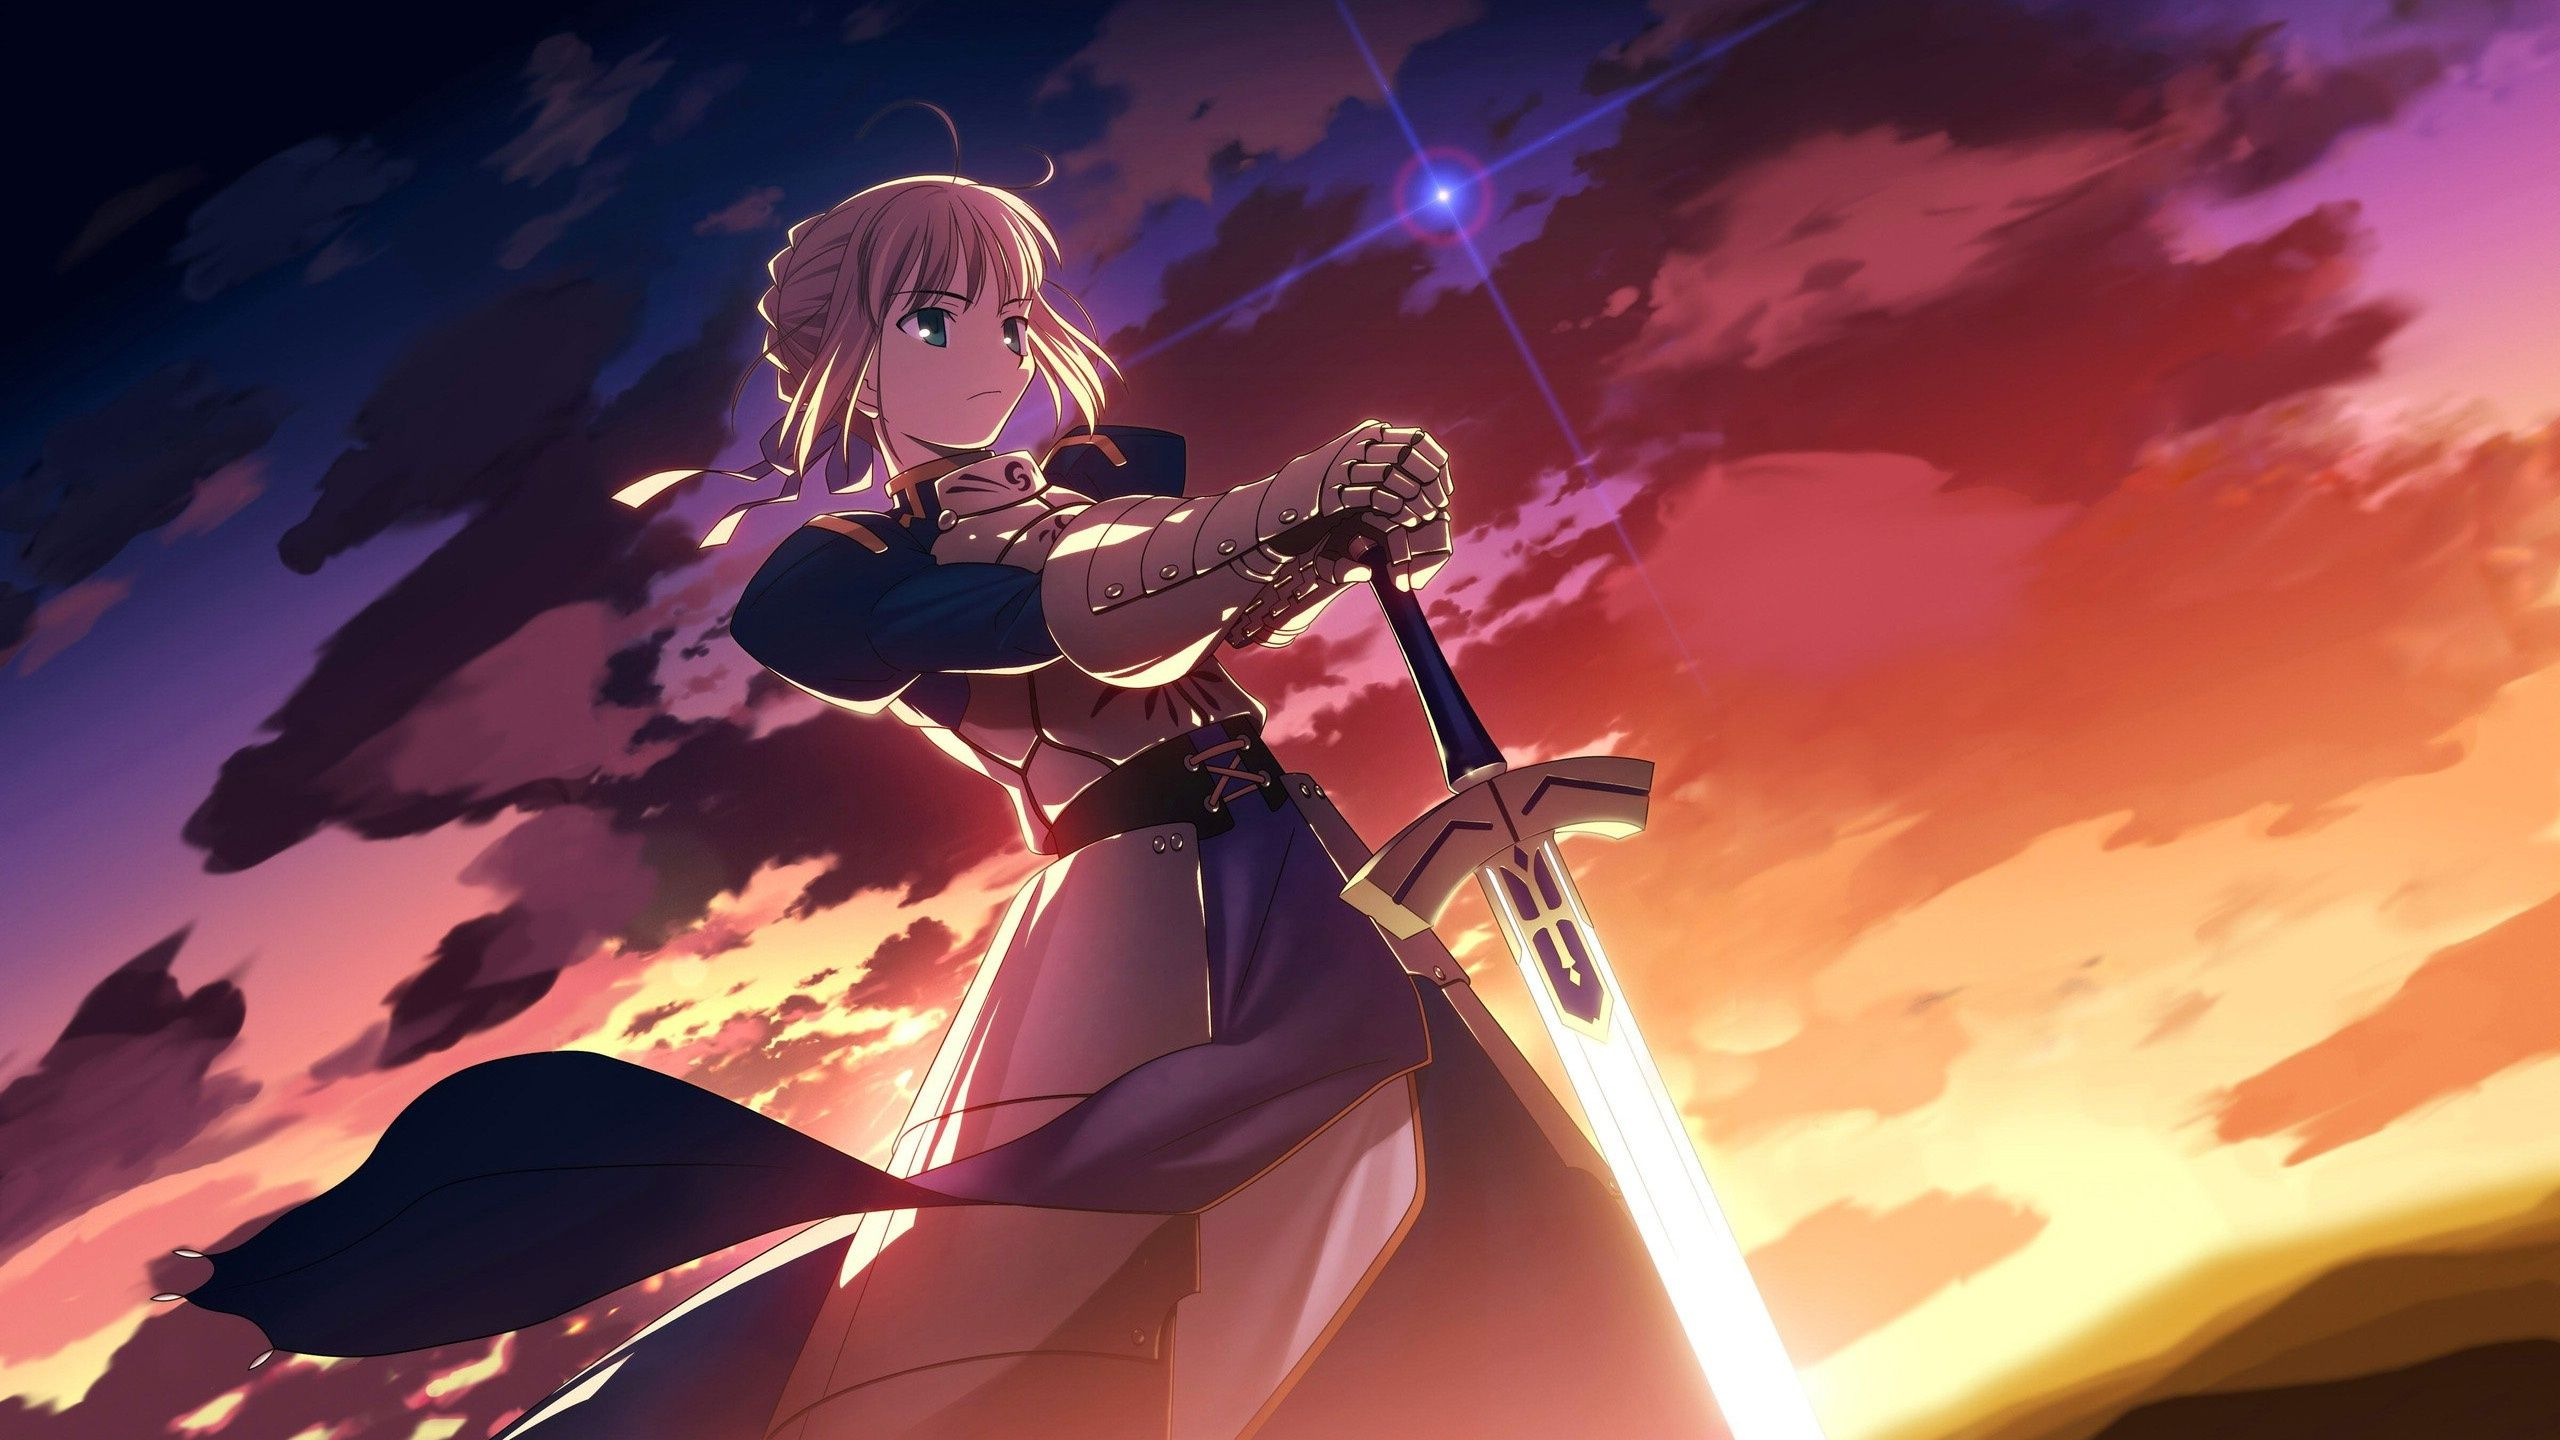 Fate/Zero Saber Wallpaper | Fate series | Pinterest | Fate zero ...